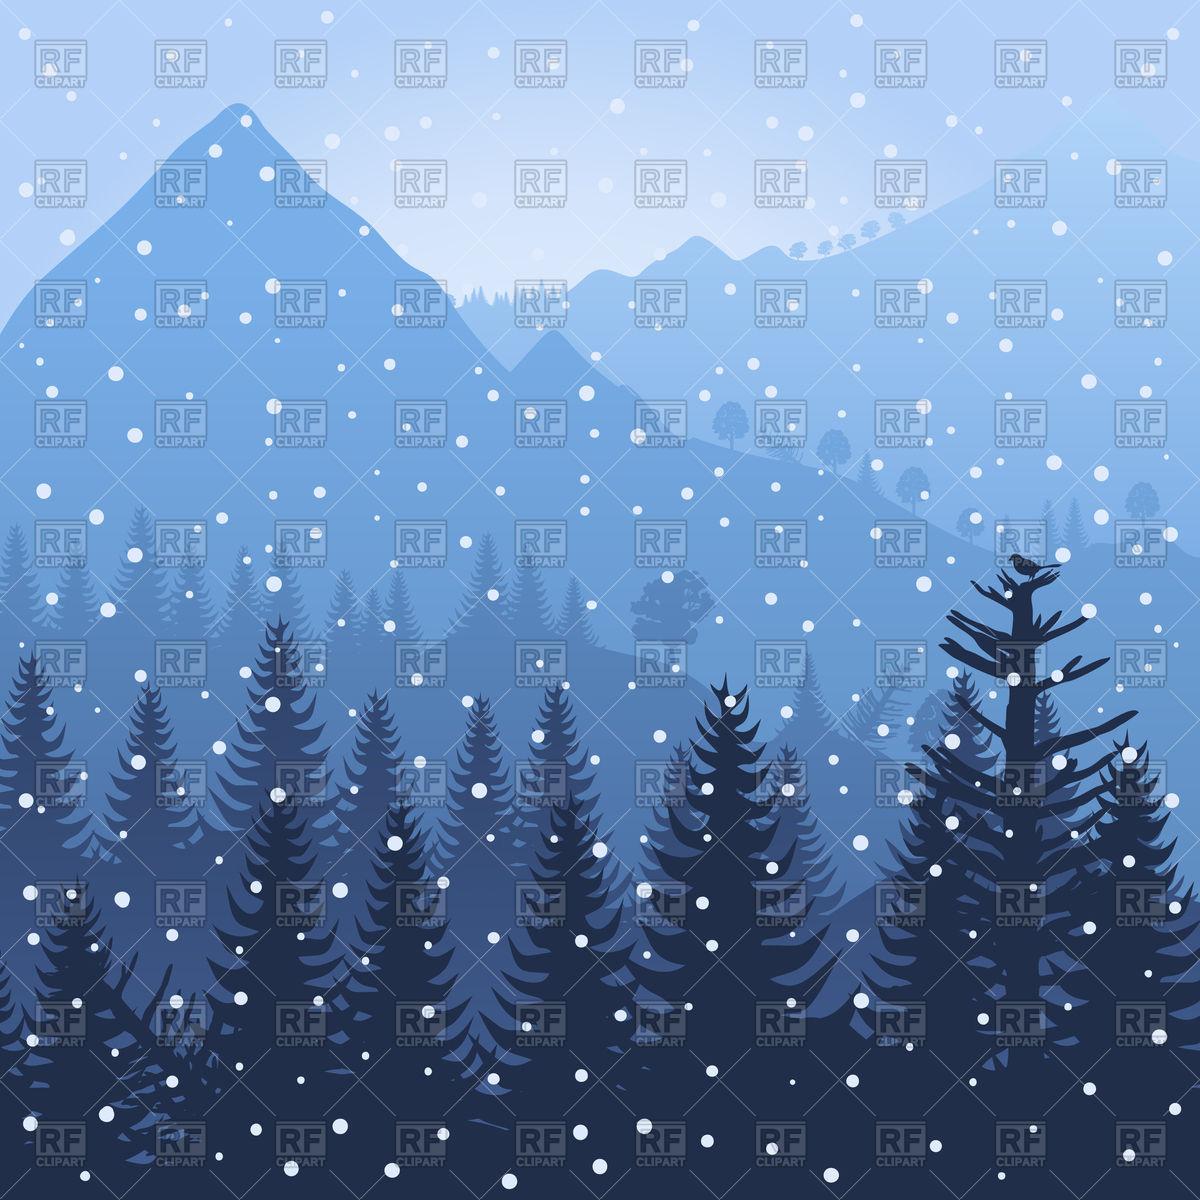 Winter wood in mountains Vector Image #79337.